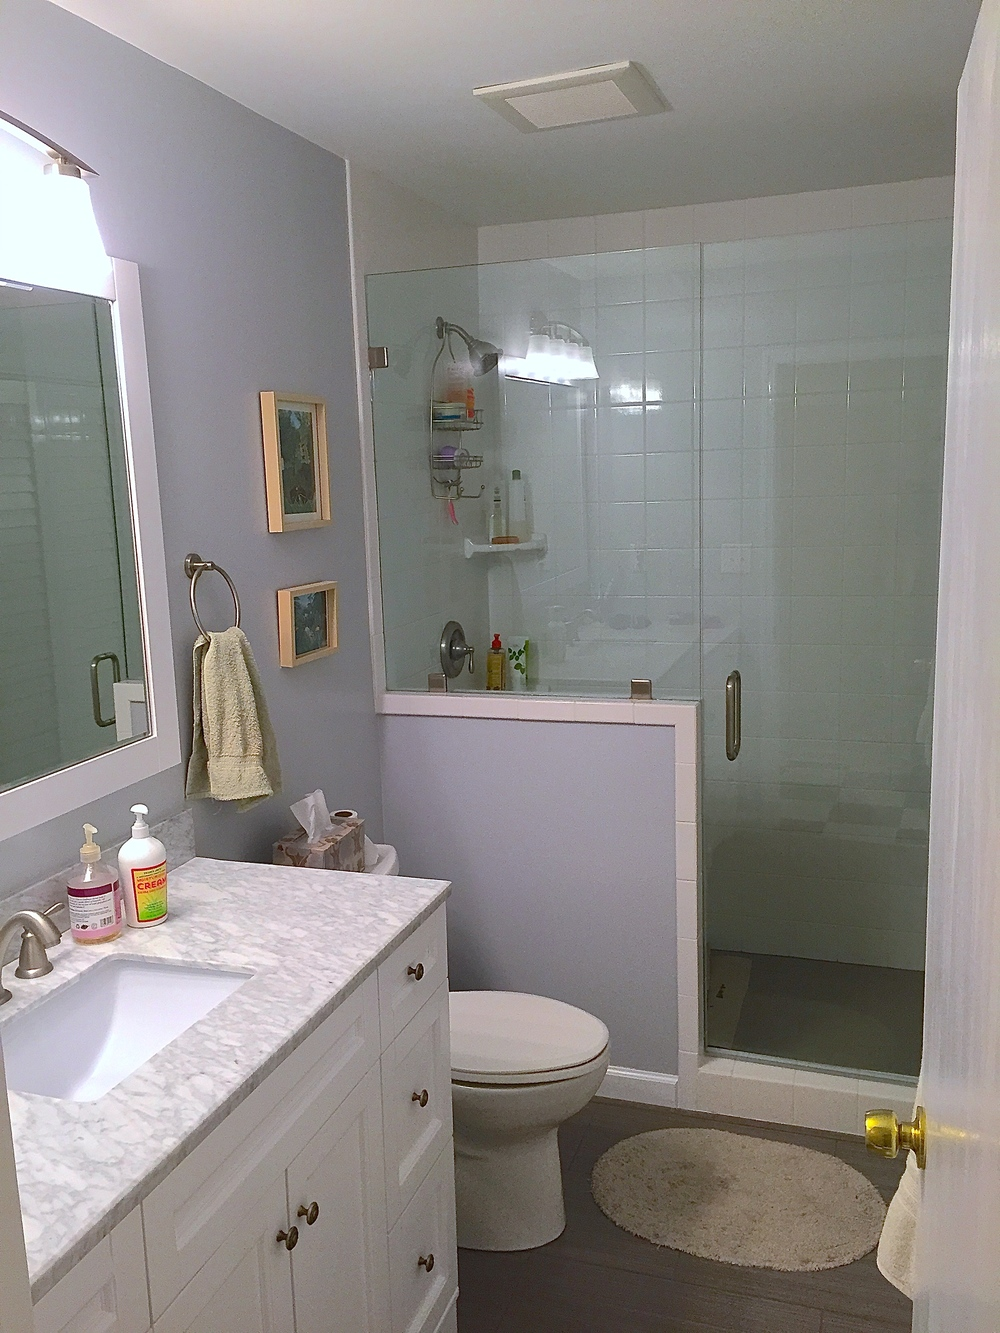 Blog asheville restoration and contracting by logan for Bath remodel asheville nc